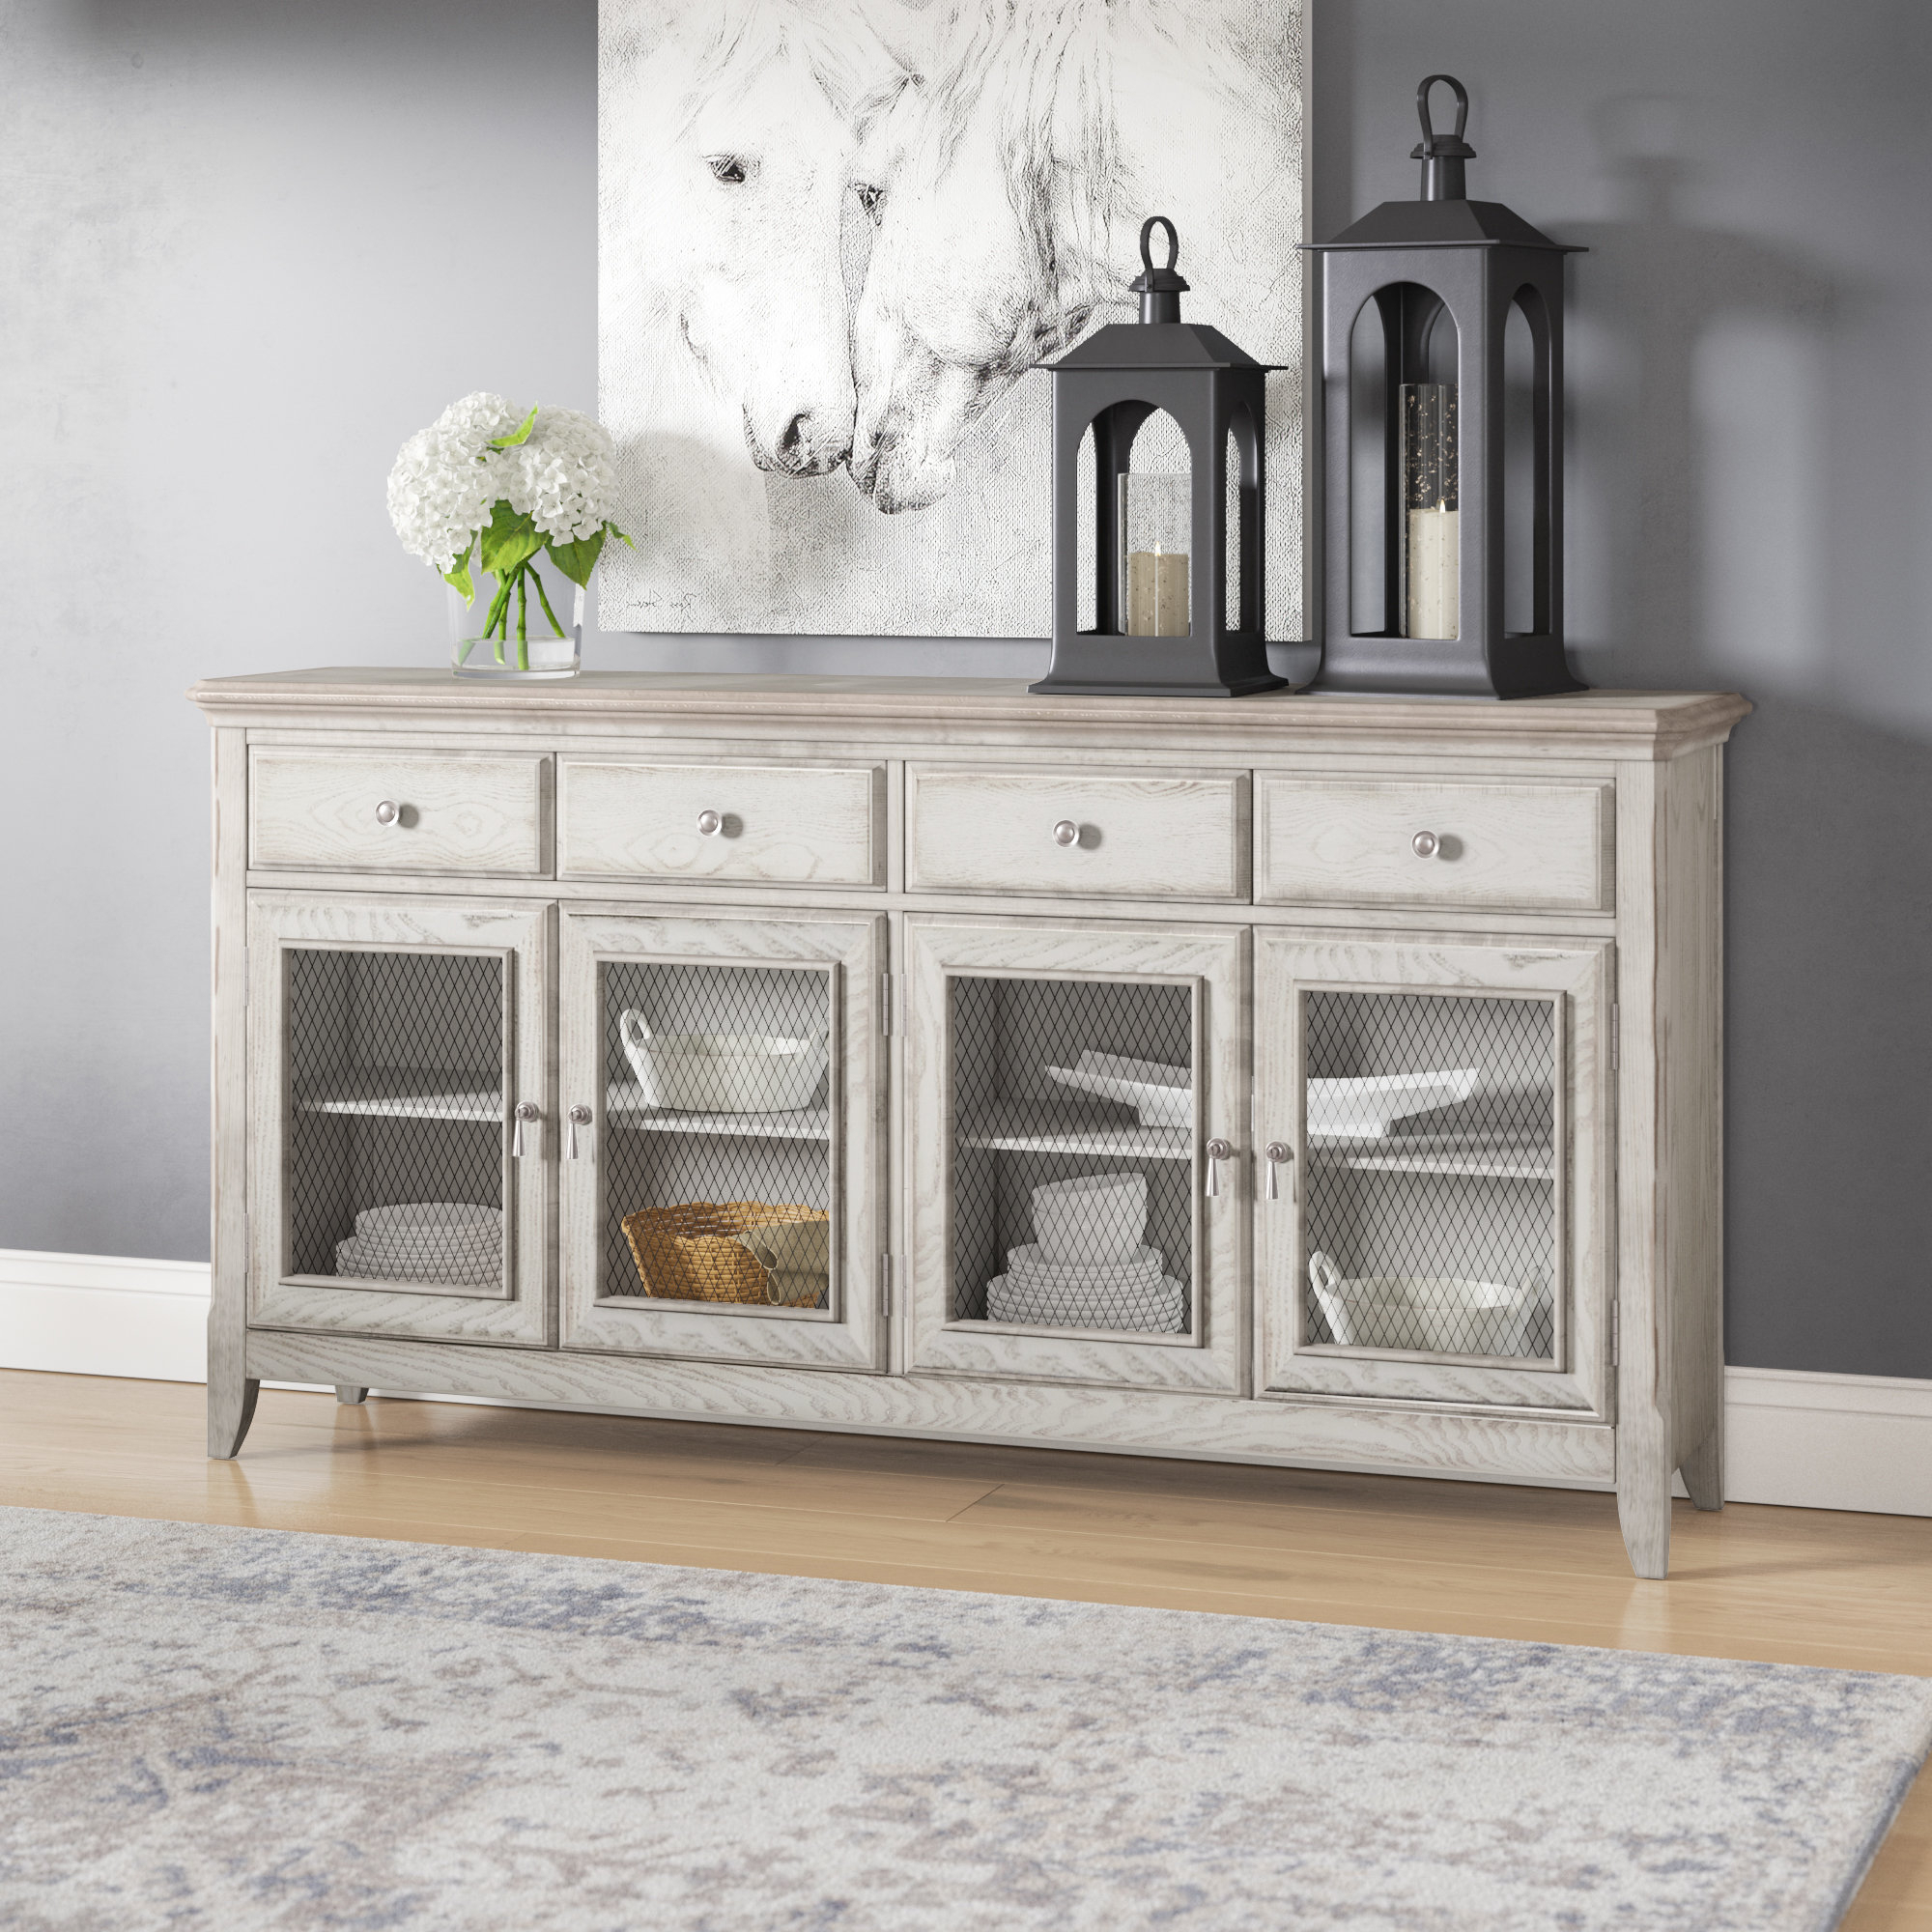 Laurel Foundry Modern Farmhouse Guerrera 4 Door Credenza With Wire Regarding Most Up To Date 4 Door 4 Drawer Metal Inserts Sideboards (View 5 of 20)